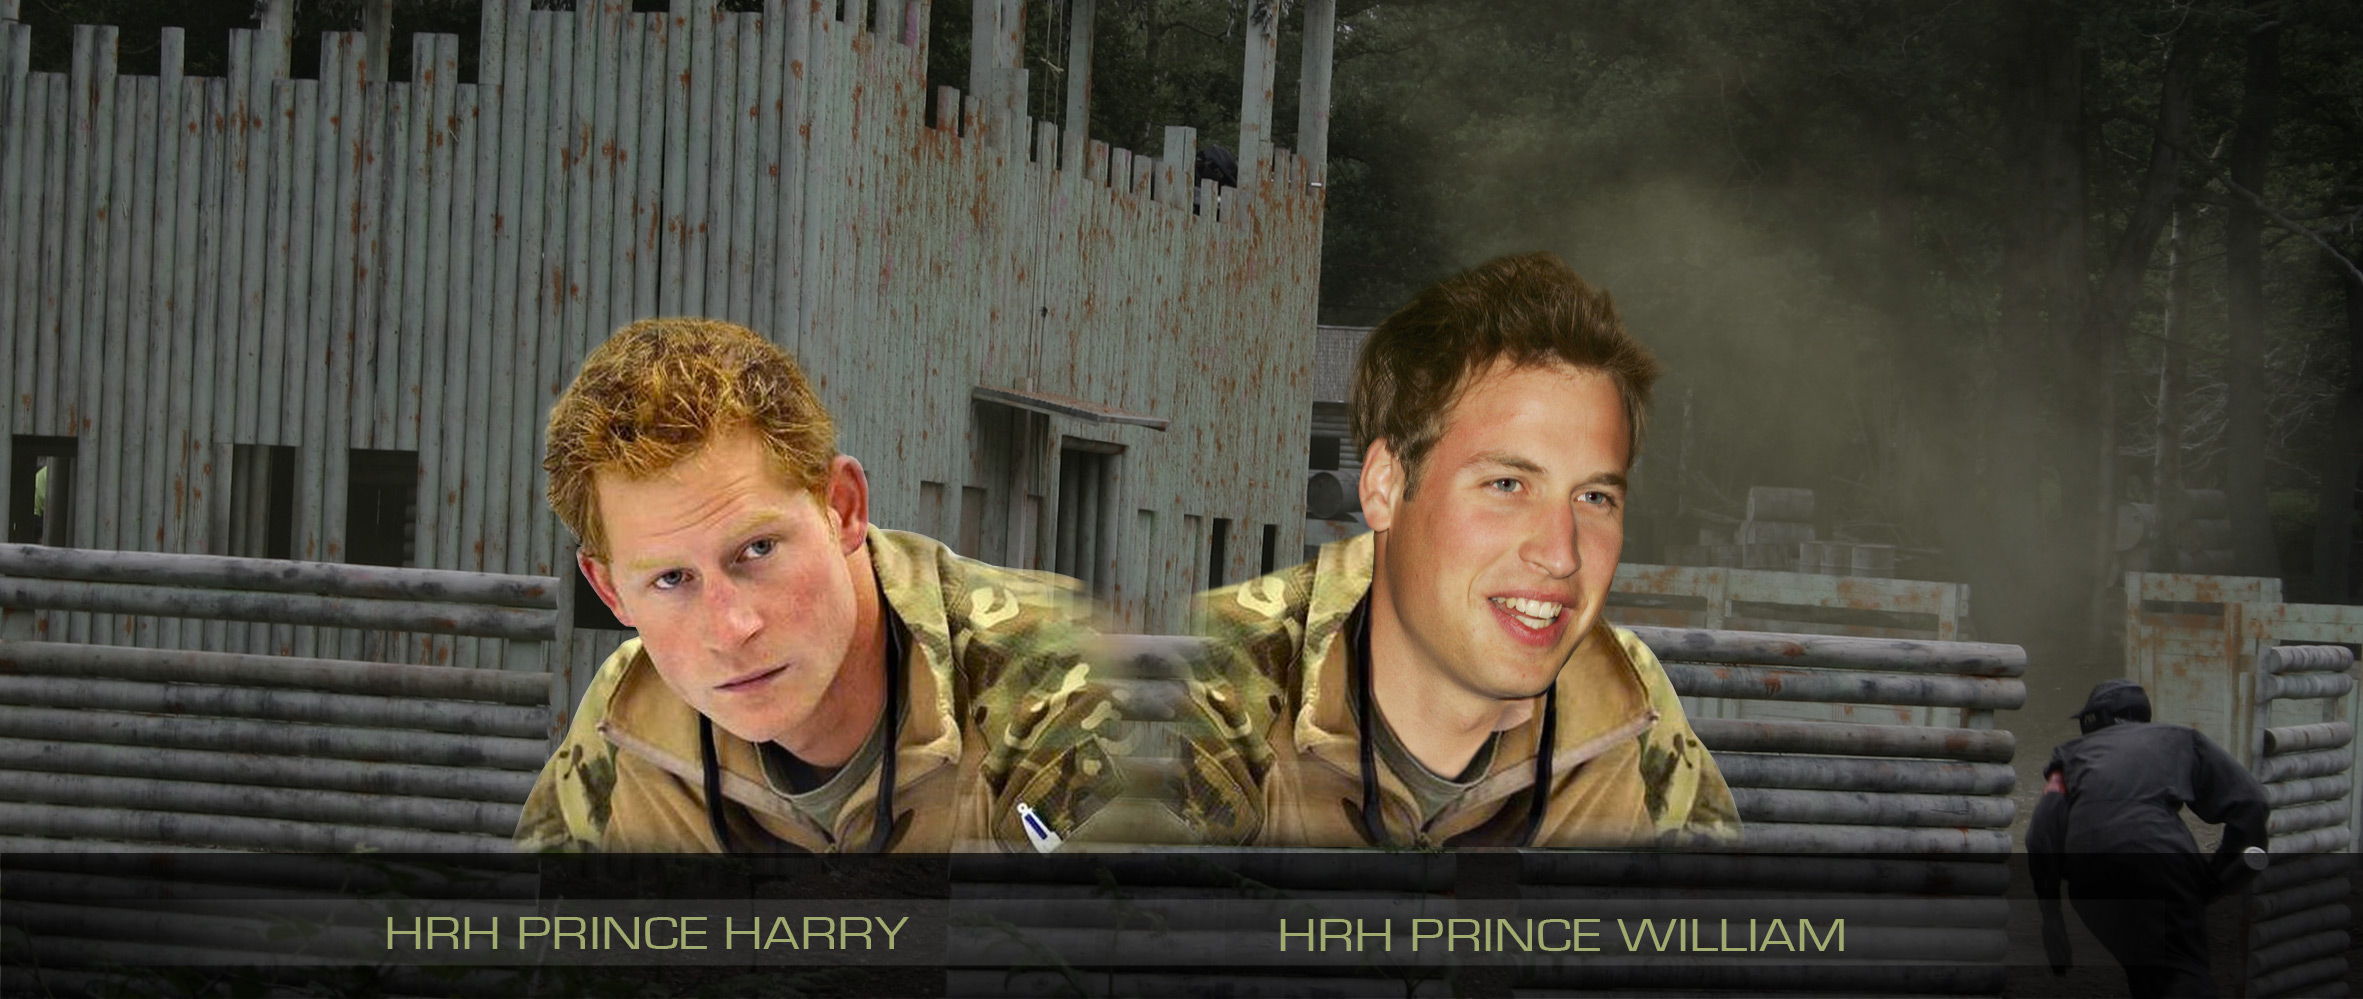 HRH Prince Harry & HRH Prince William